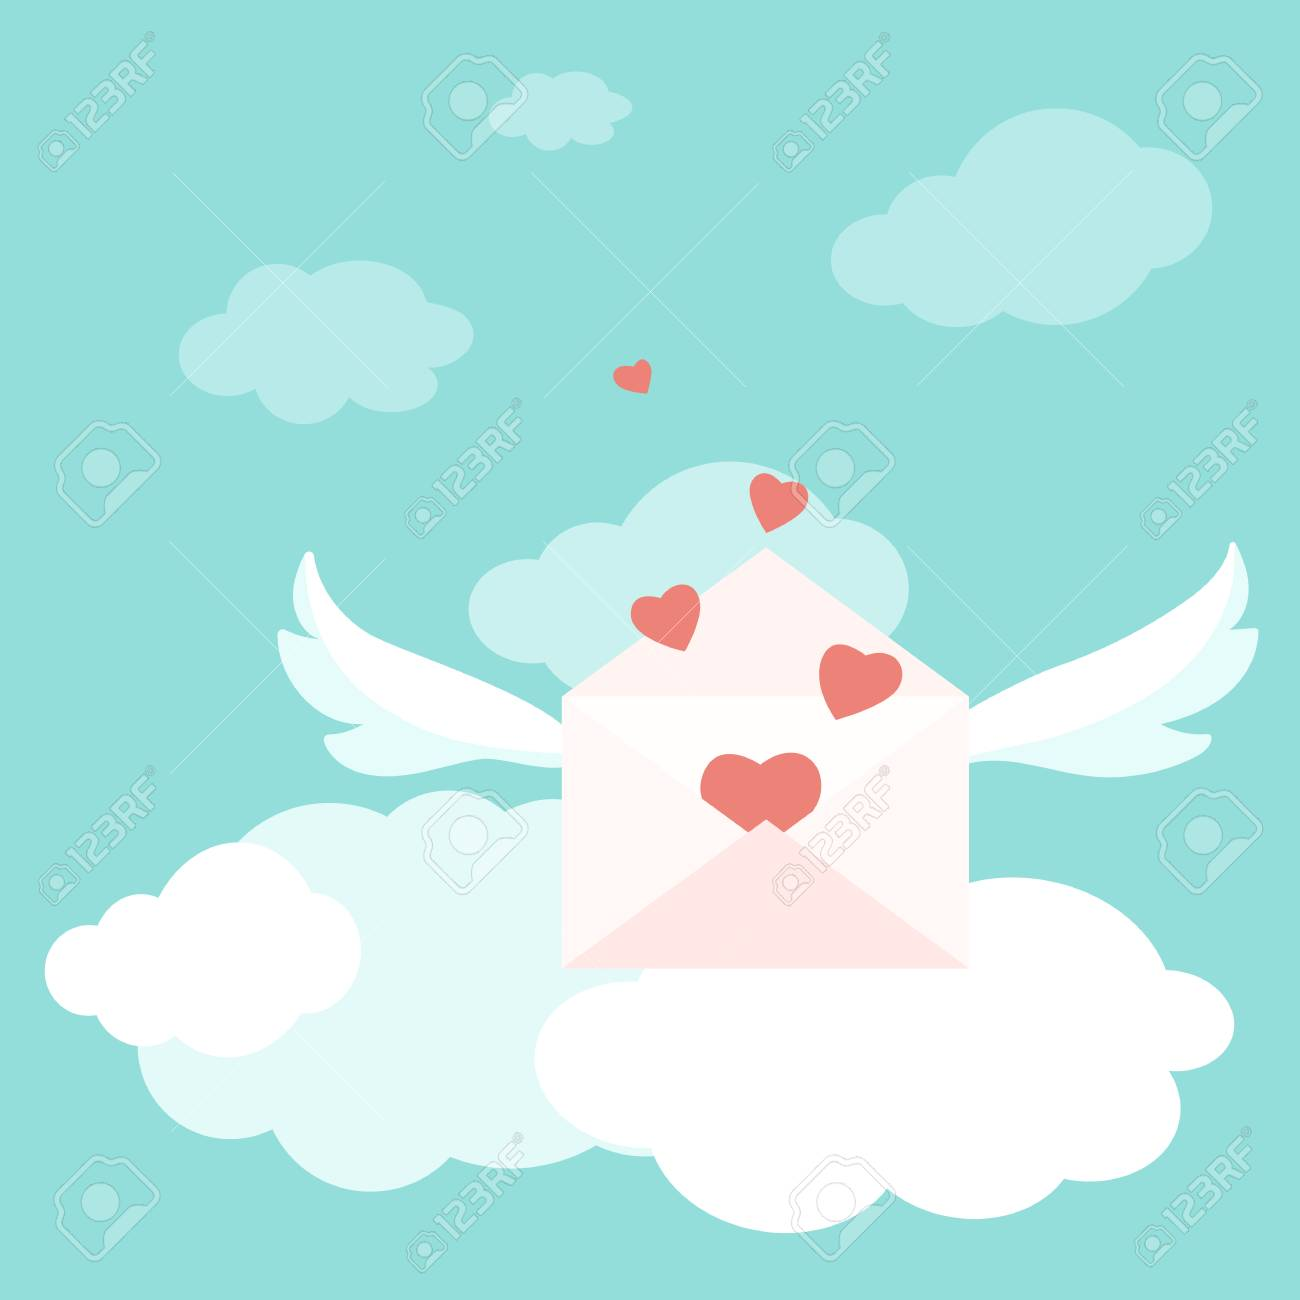 Valentine day greetings delivery concept flying love letter valentine day greetings delivery concept flying love letter envelopes with wings filled with red heart m4hsunfo